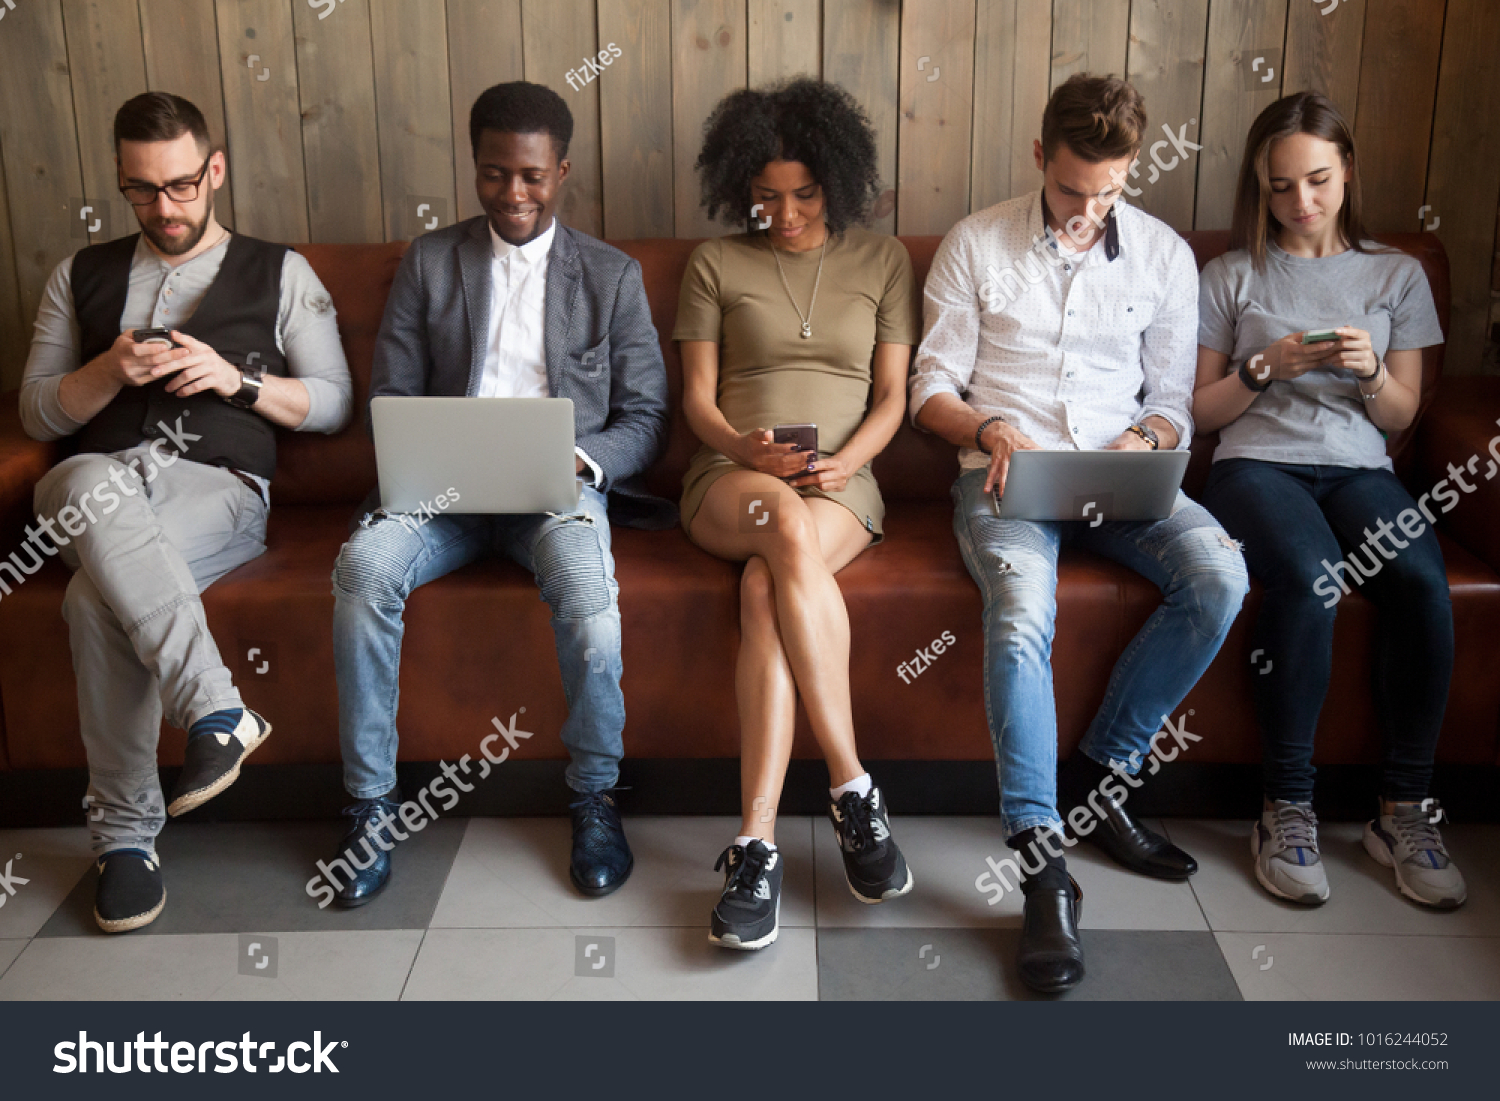 Multicultural young people using laptops and smartphones sitting in row, diverse african and caucasian millennials entertaining online obsessed with modern devices waiting in queue, gadget addiction #1016244052 - 123PhotoFree.com